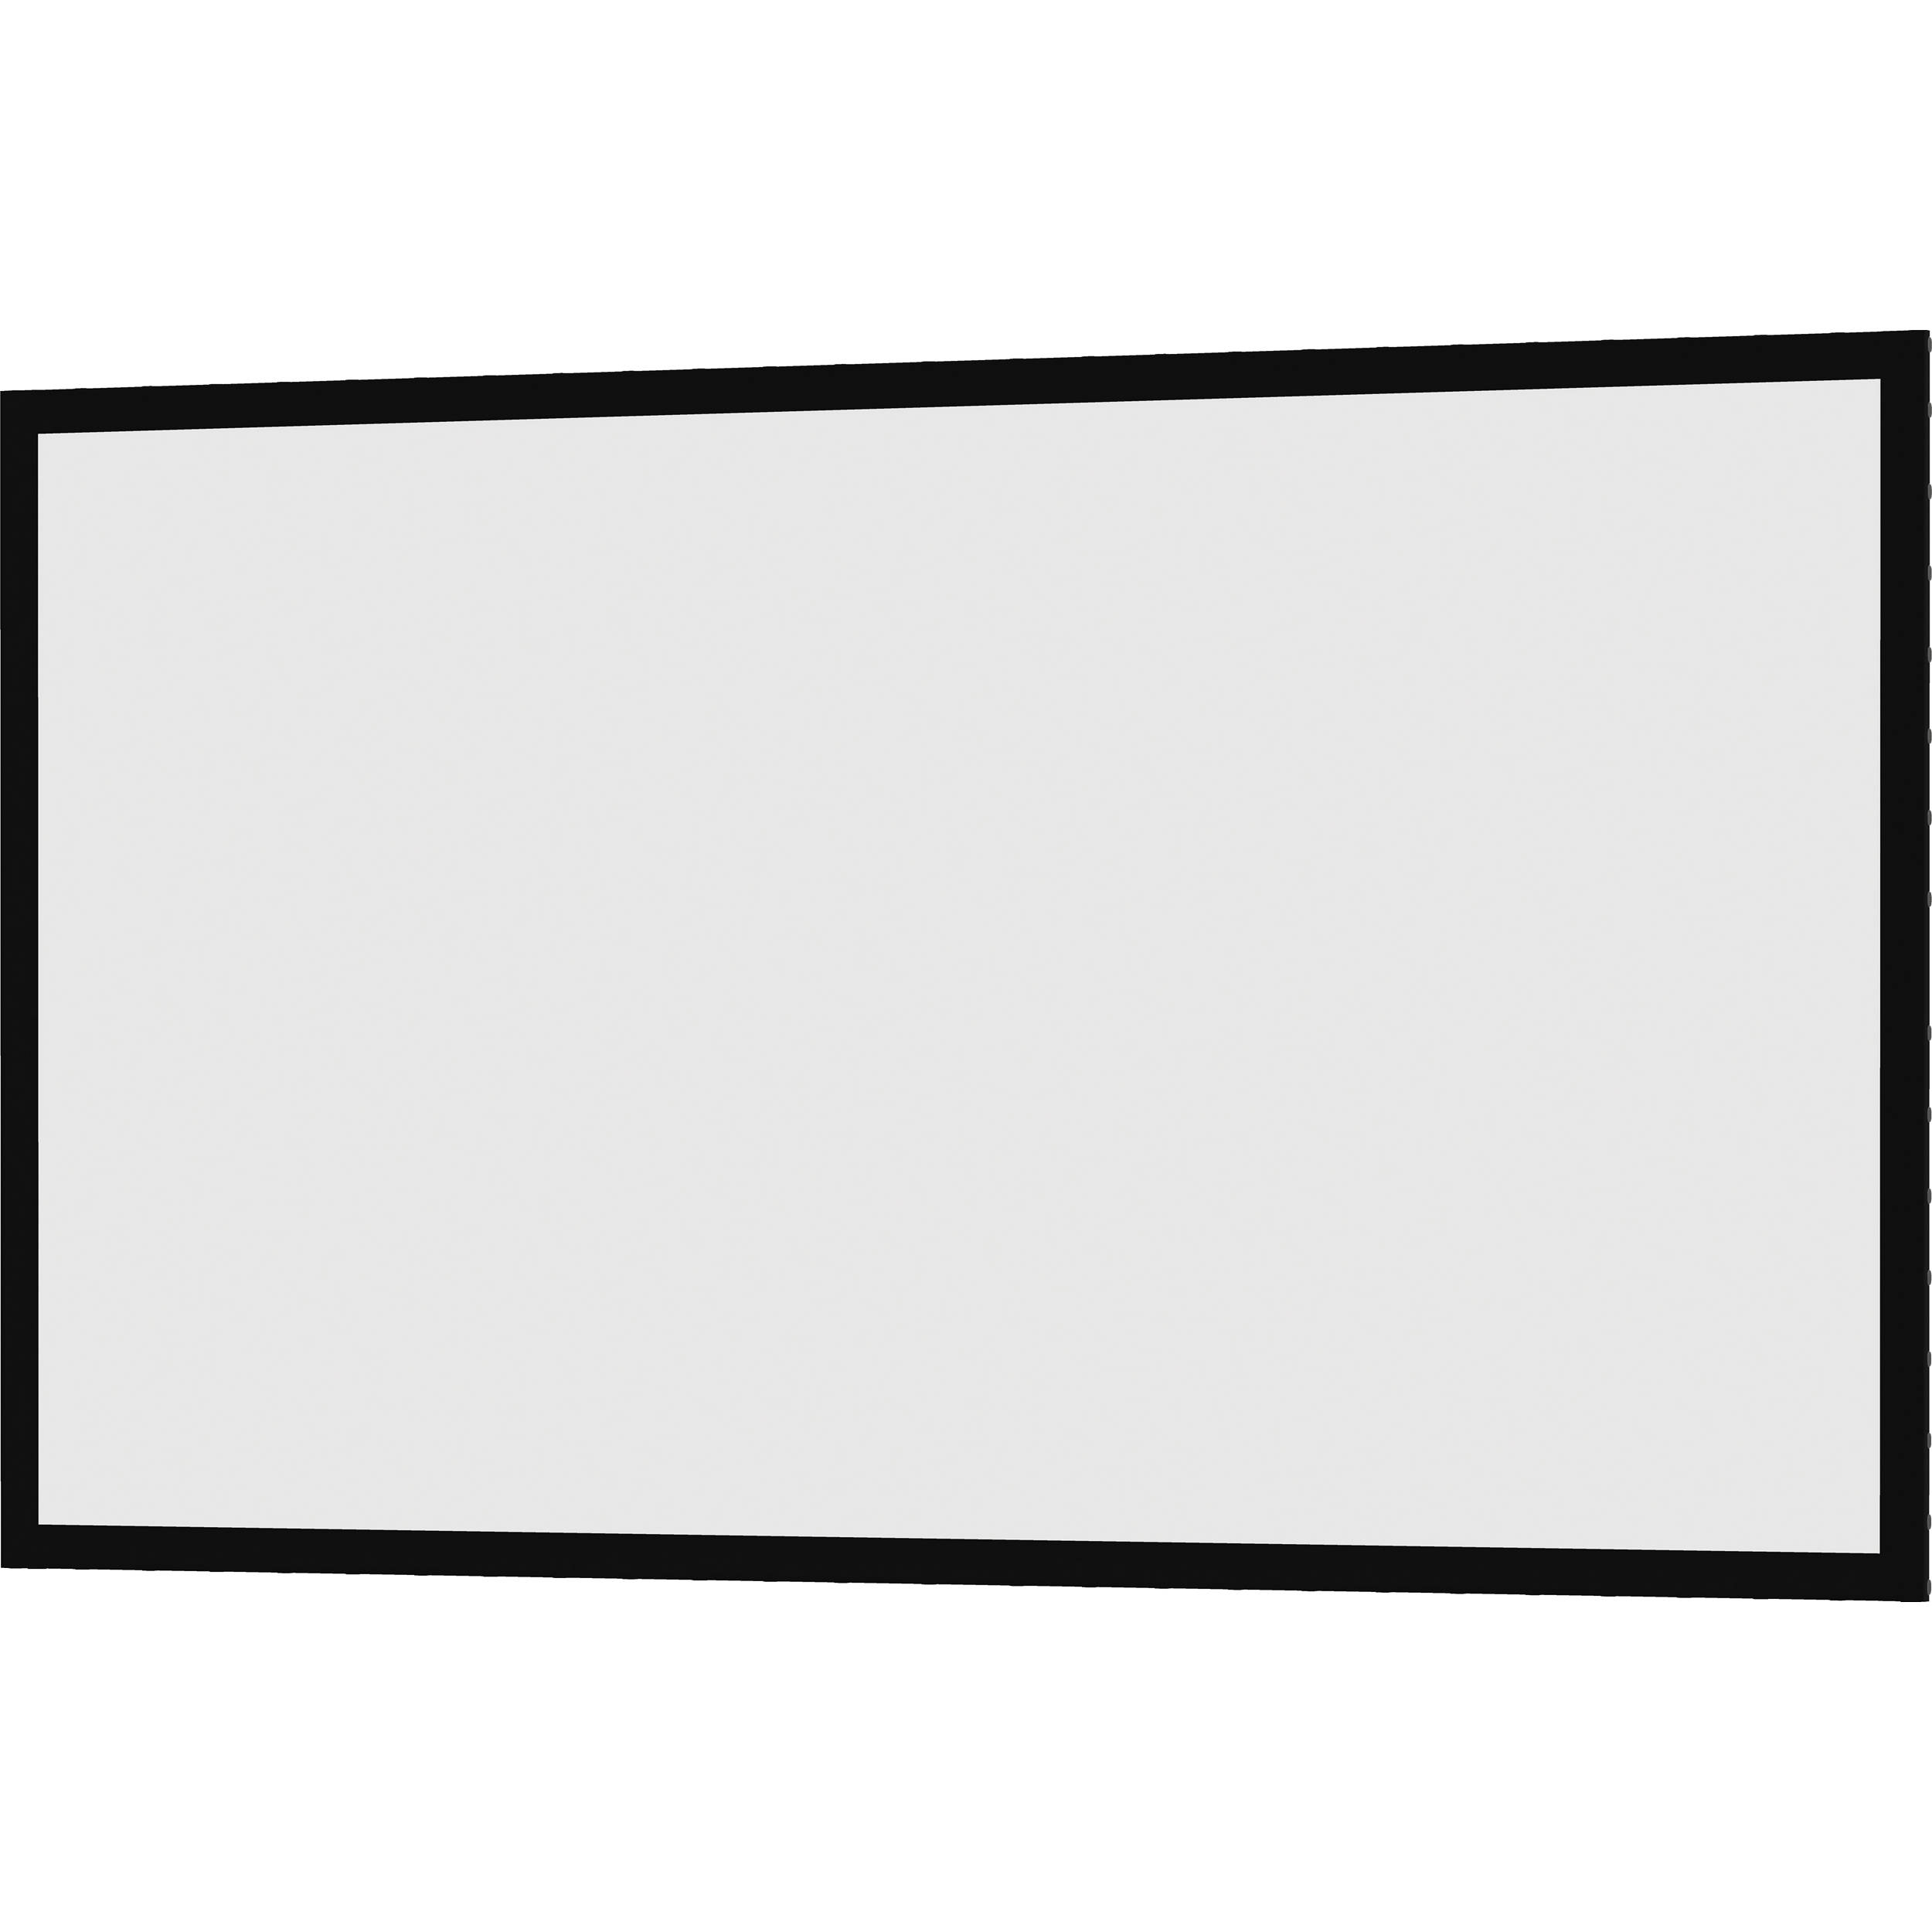 fixed projection screen ★ezframe2 white fixed frame projection screen by elite screens™ low price for ezframe2 white fixed frame projection screen by elite screens check price to day on-line searching has currently gone a protracted approach it's modified the way customers and entrepre.